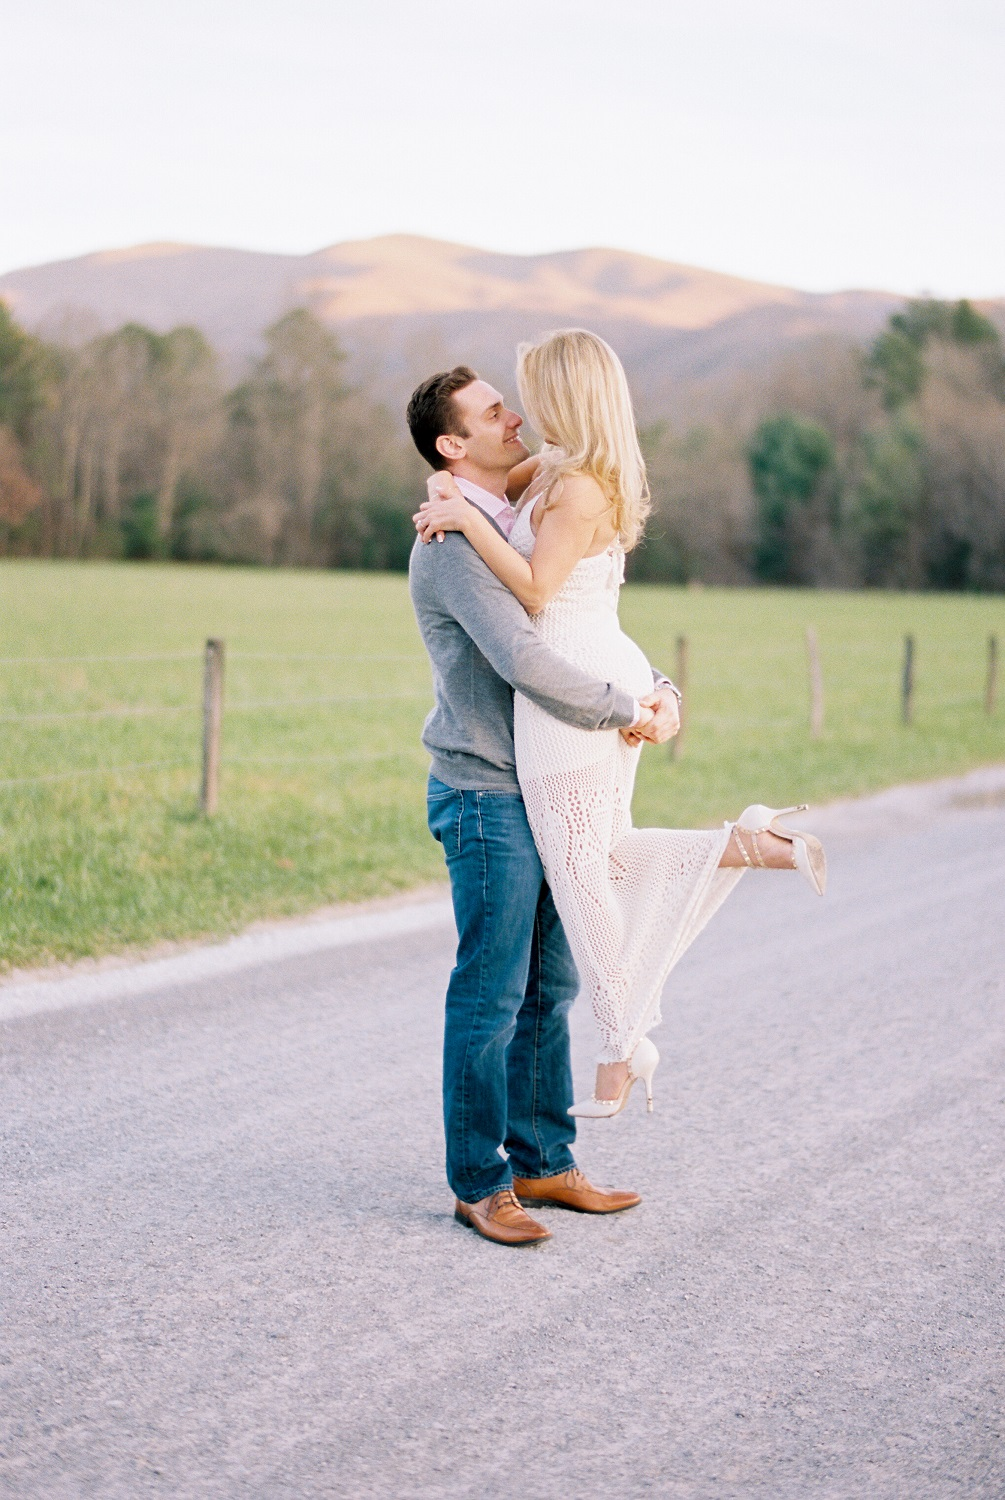 cades-cove-engagement-great-smoky-mountains